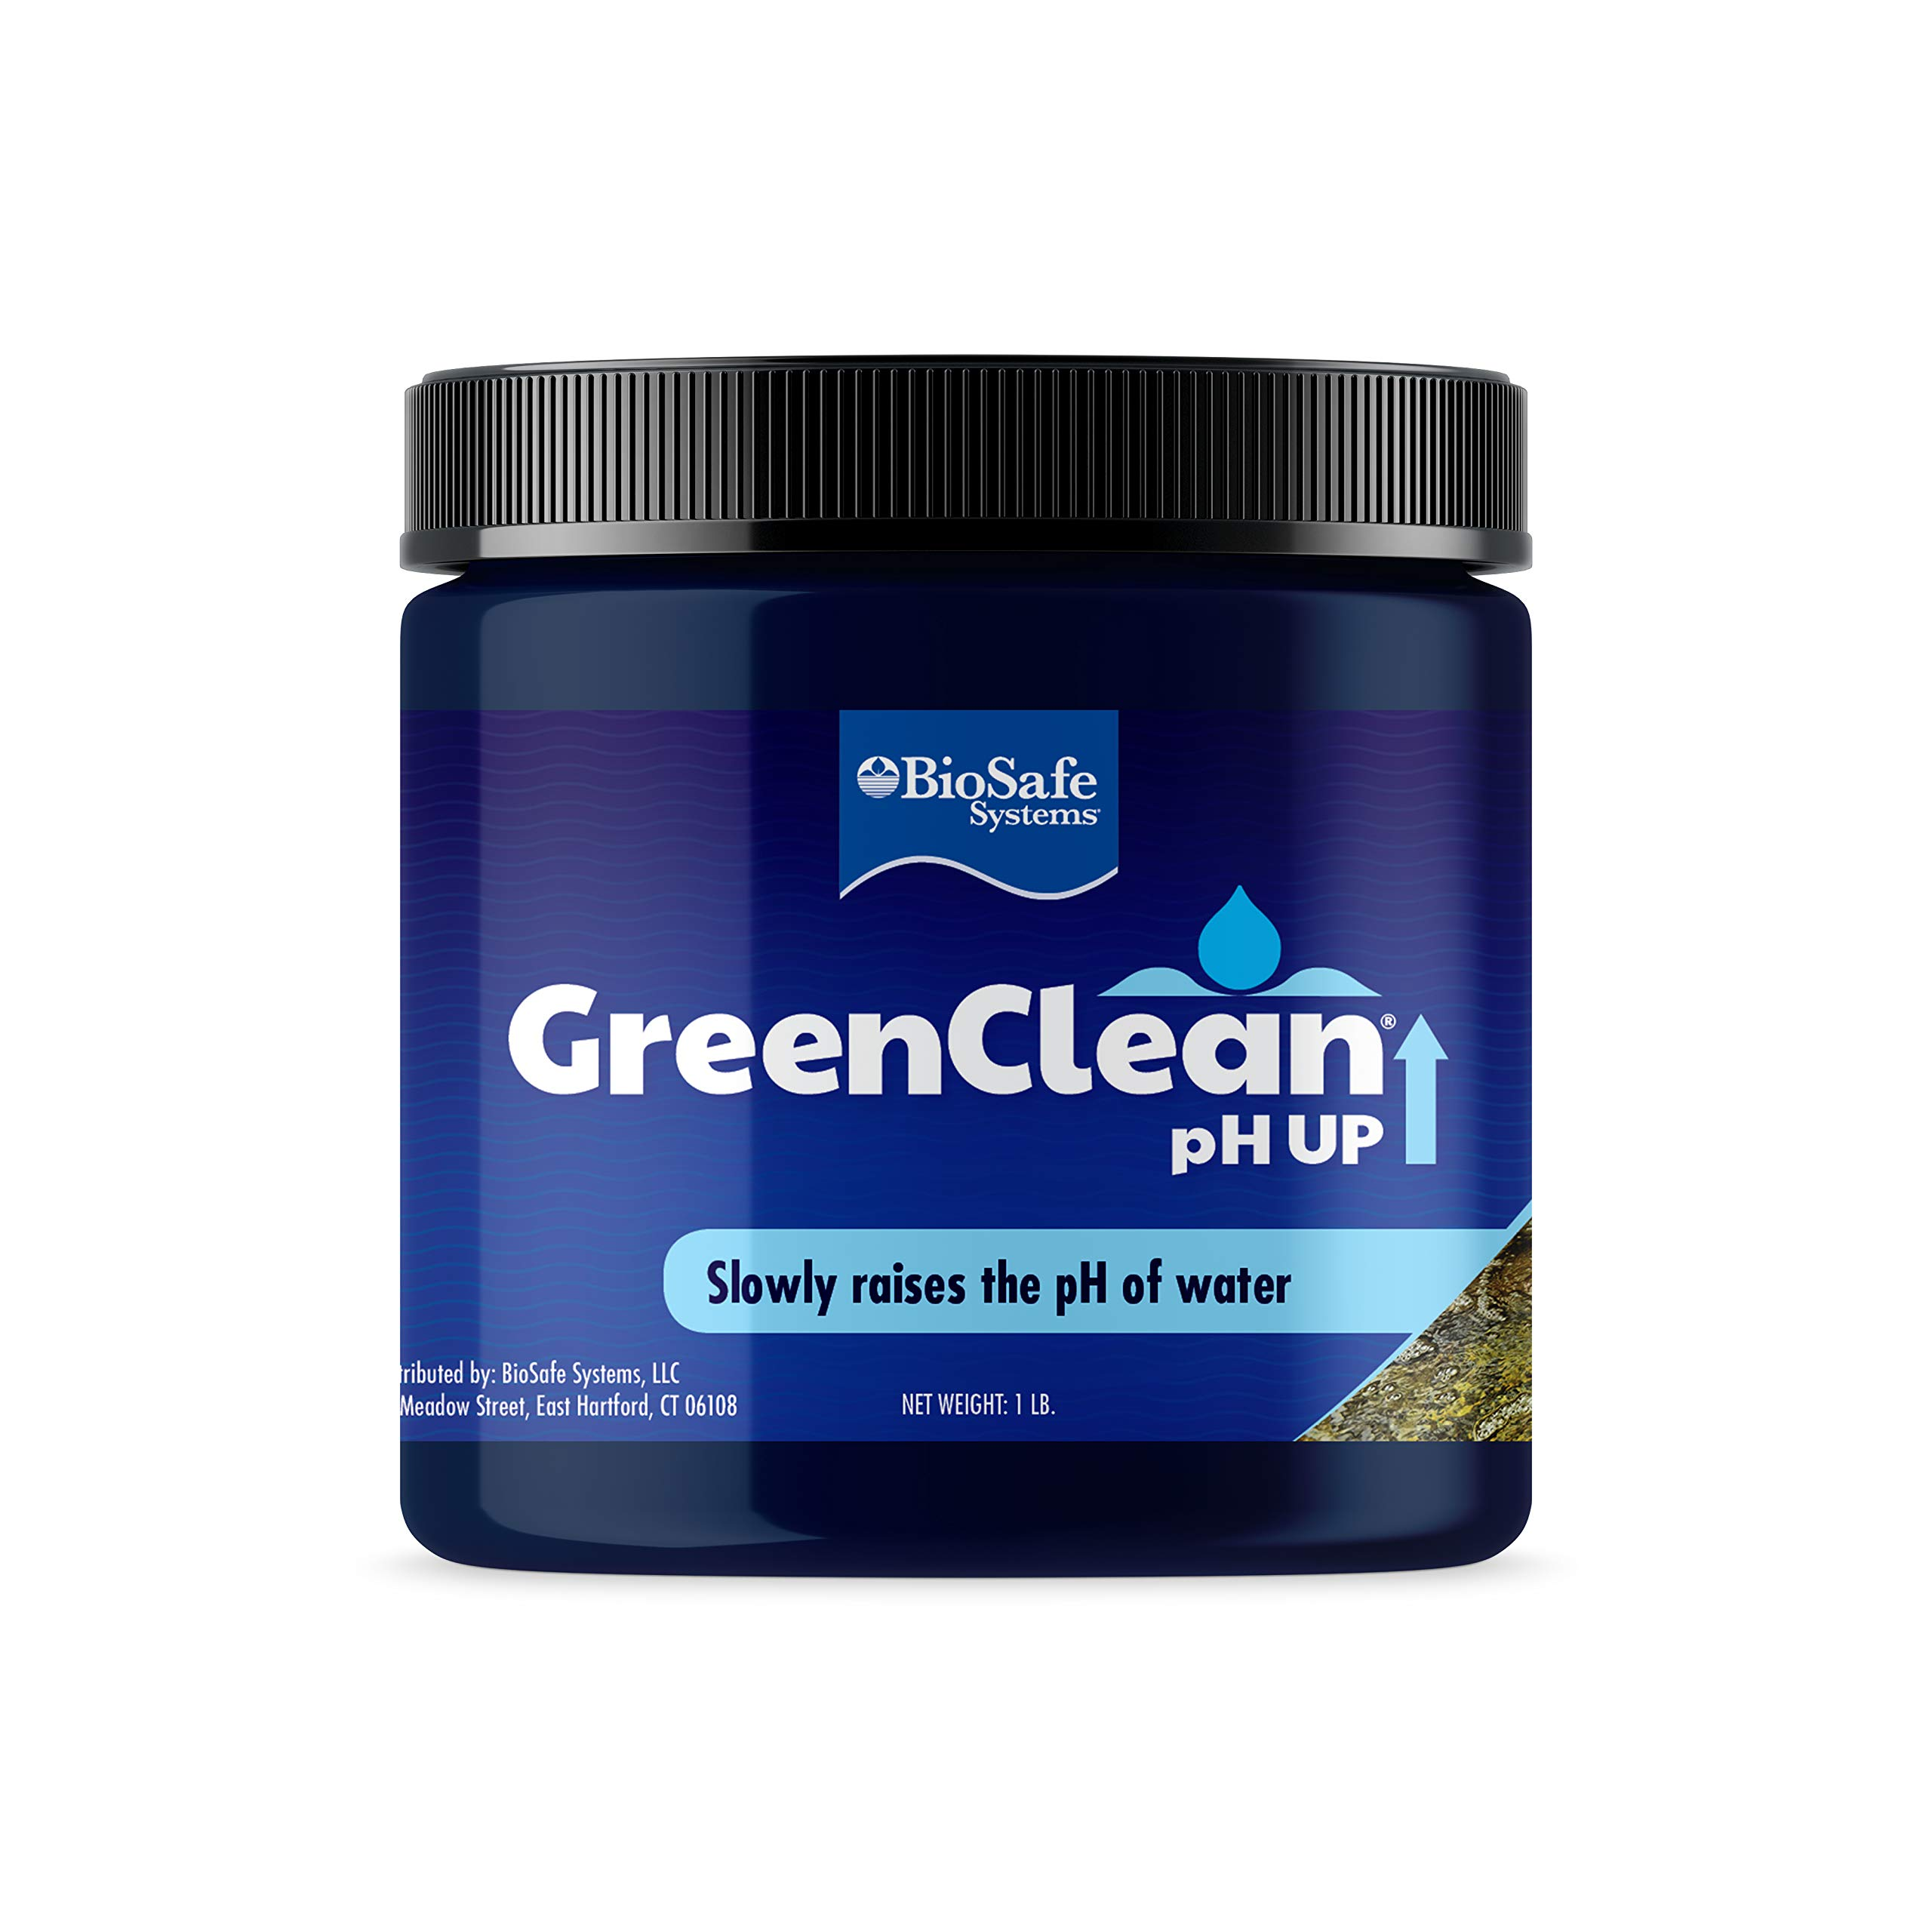 GreenClean pH UP Granular - 1 lb - pH Adjuster for Koi Ponds and Water Features. Safe for Fish, Plants, Pets and Wildlife.